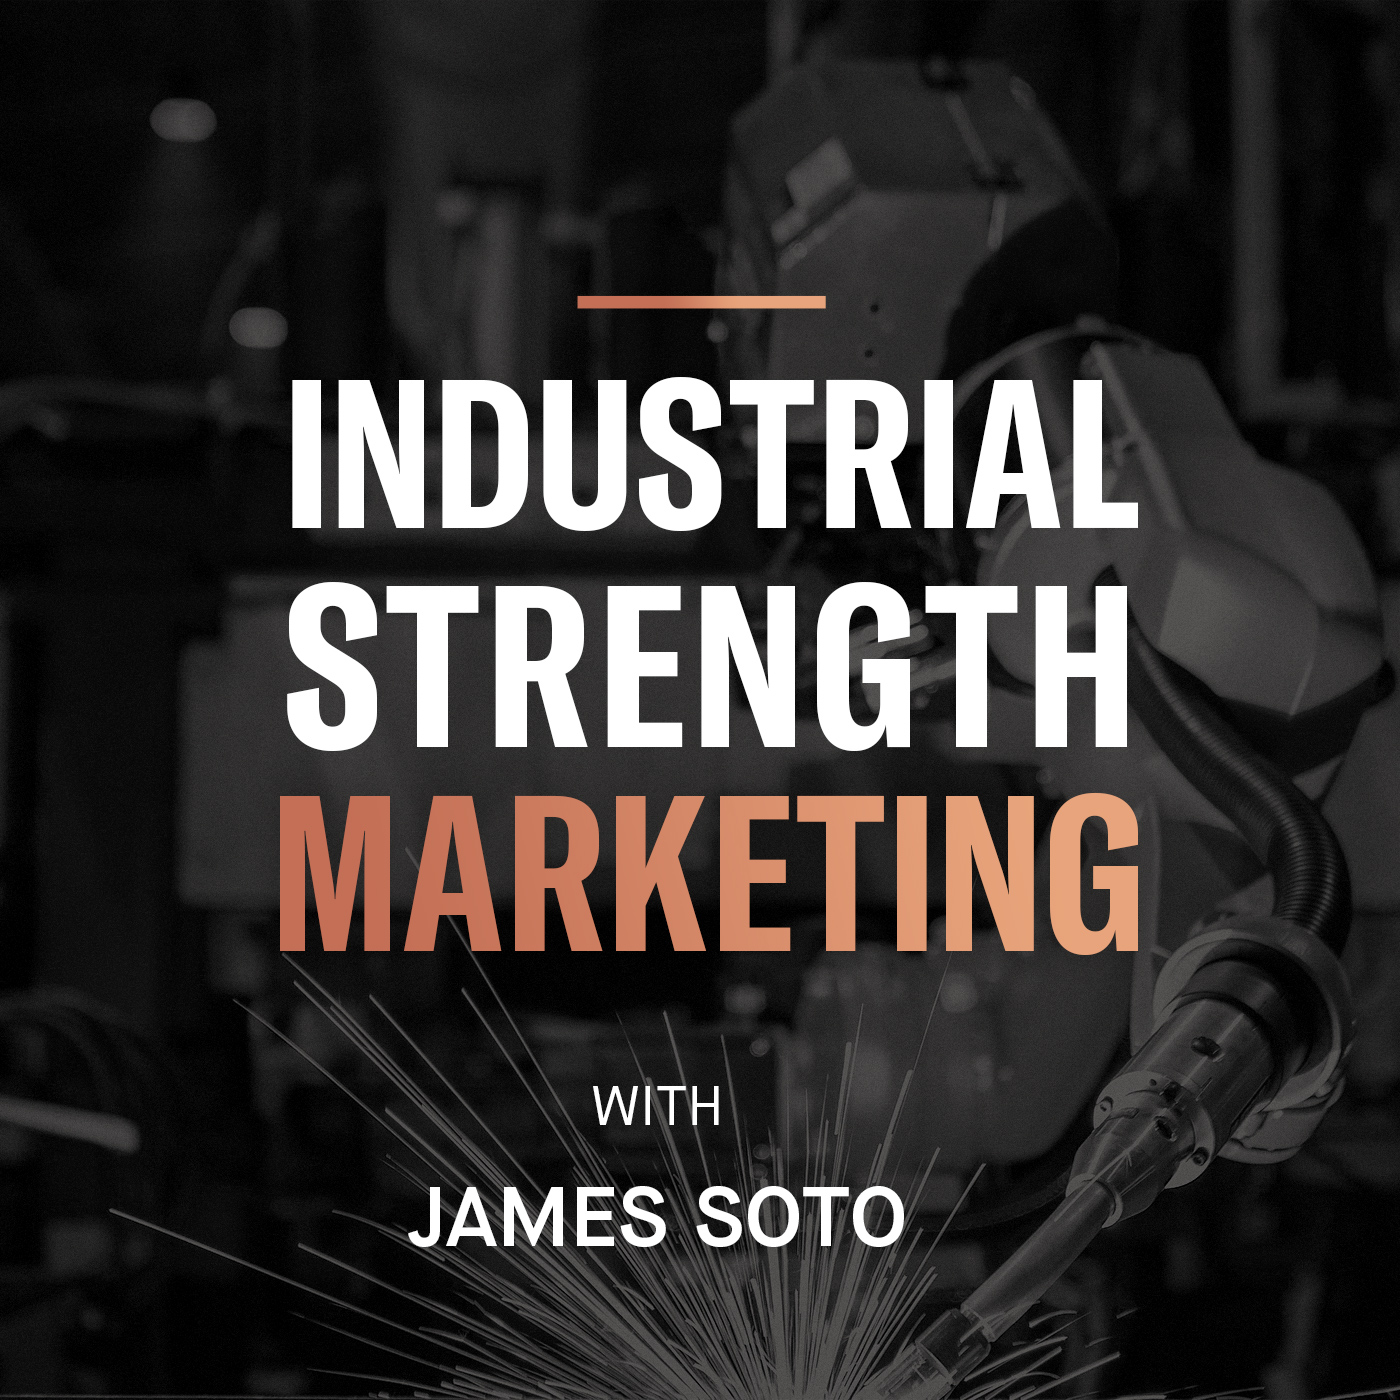 Industrial Strength Marketing Podcast - James Soto